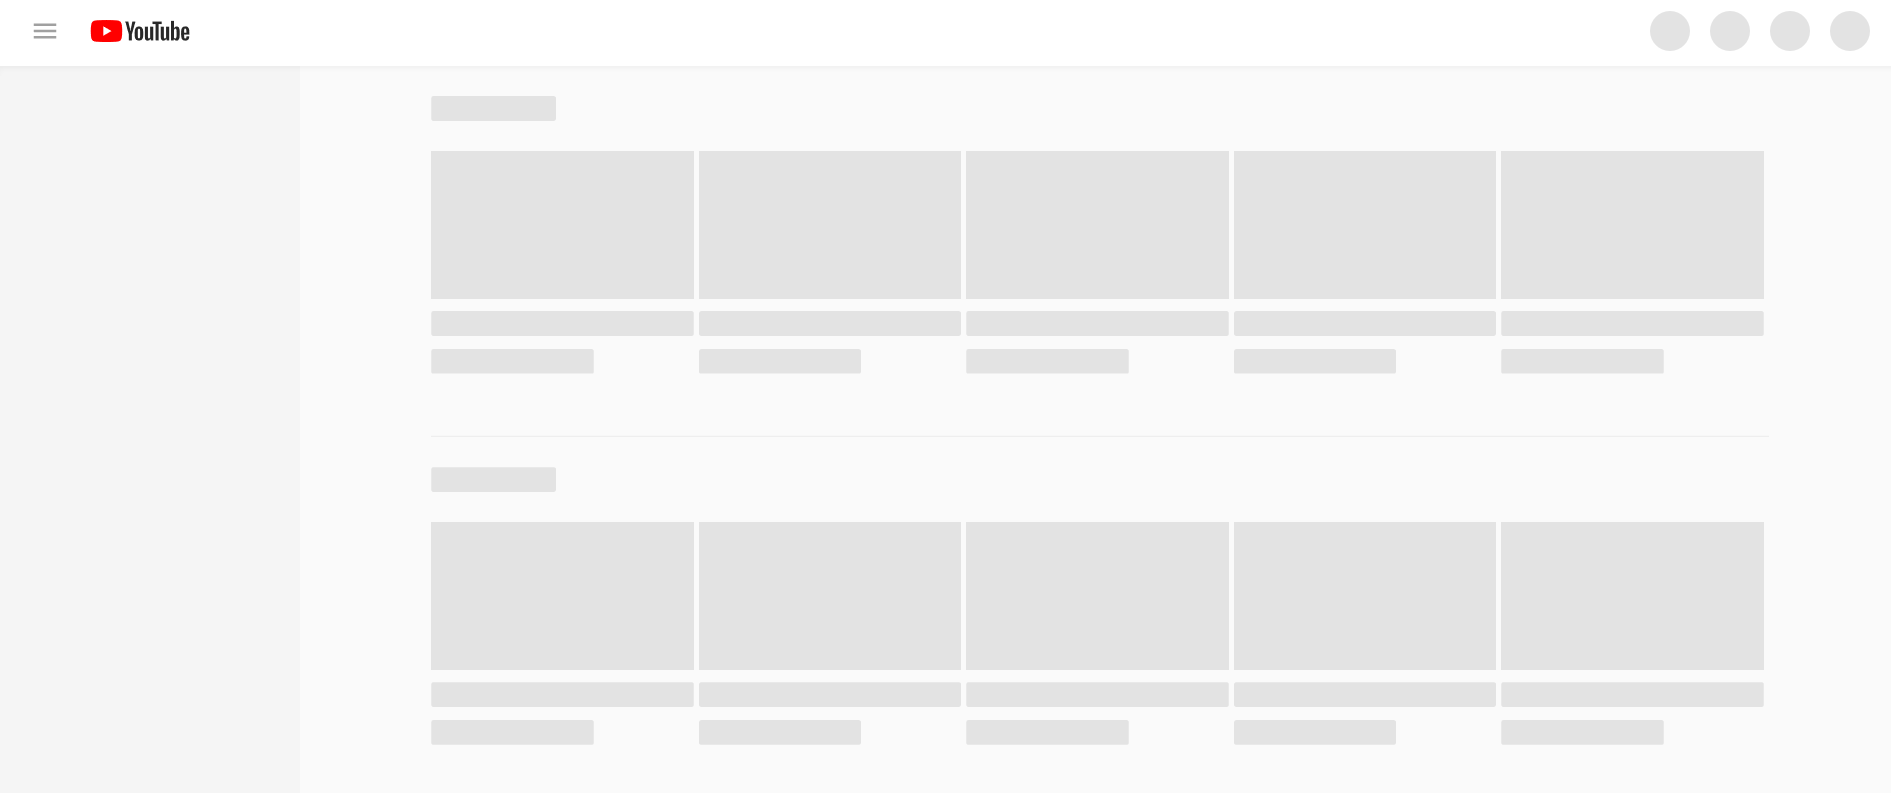 Youtube loading page example